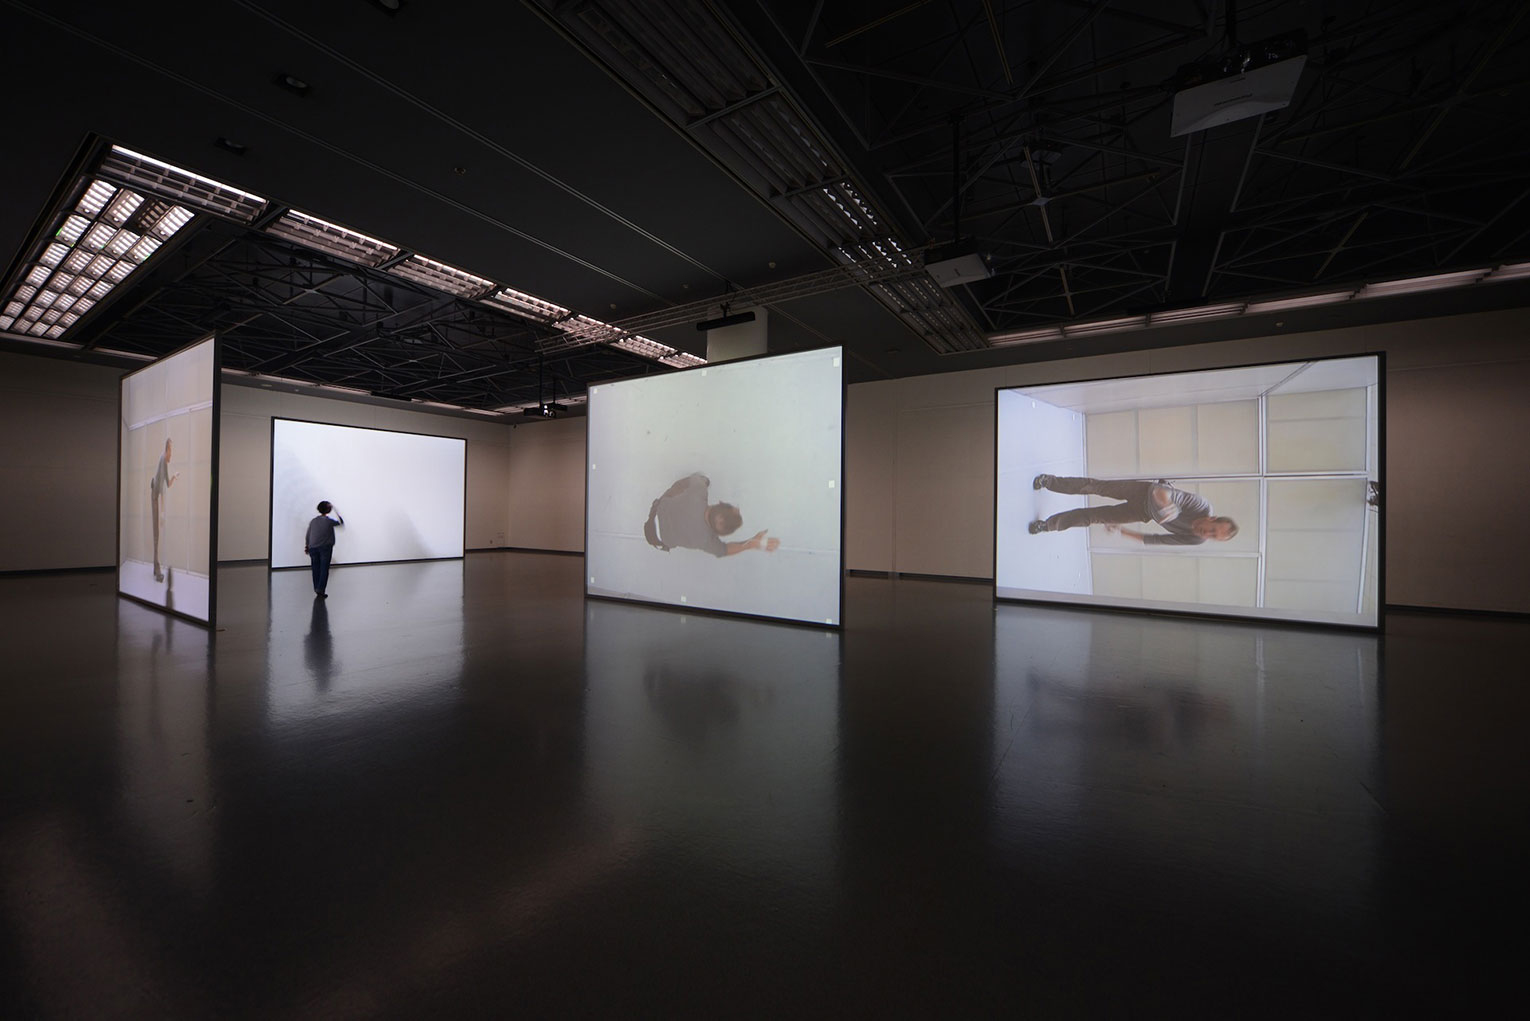 <b>Title:</b>Whenever on on on nohow on | airdrawing<br /><b>Year:</b>2013<br /><b>Medium:</b>Five channel video installation running simultaneously, amplifier, speakers, back projection screens <br /><b>Size:</b>Dimensions variable